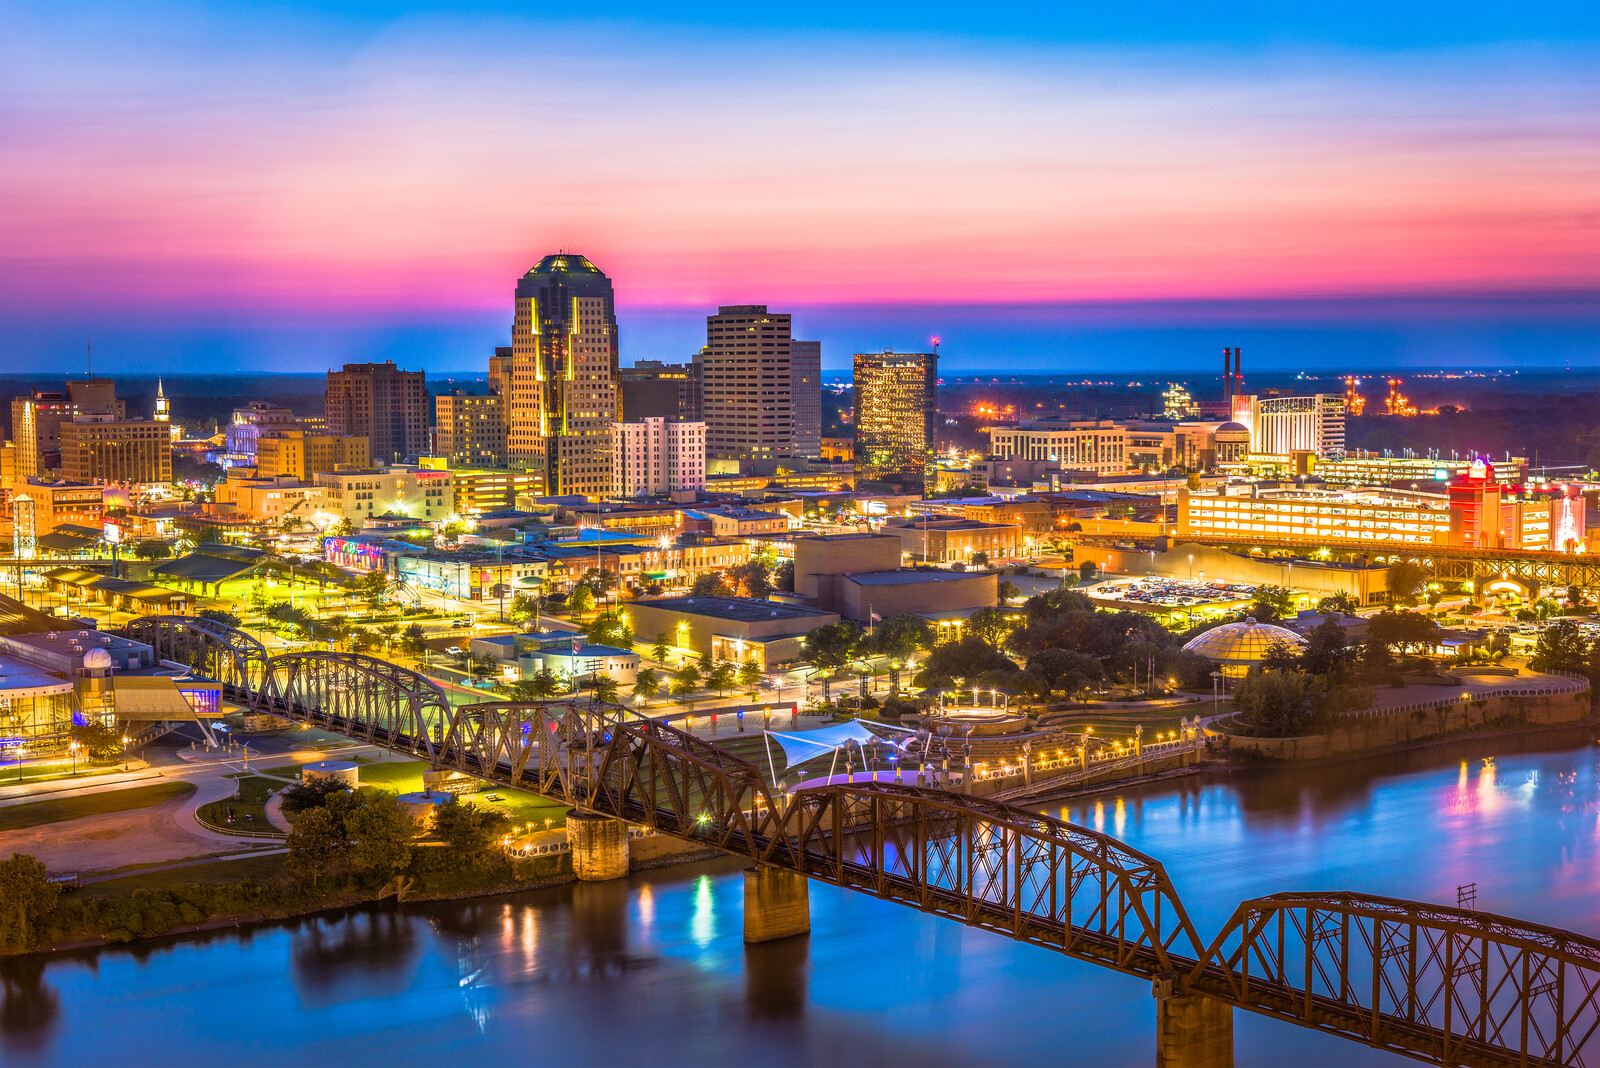 Downtown skyline of Shreveport, Louisiana along the red river at sunset